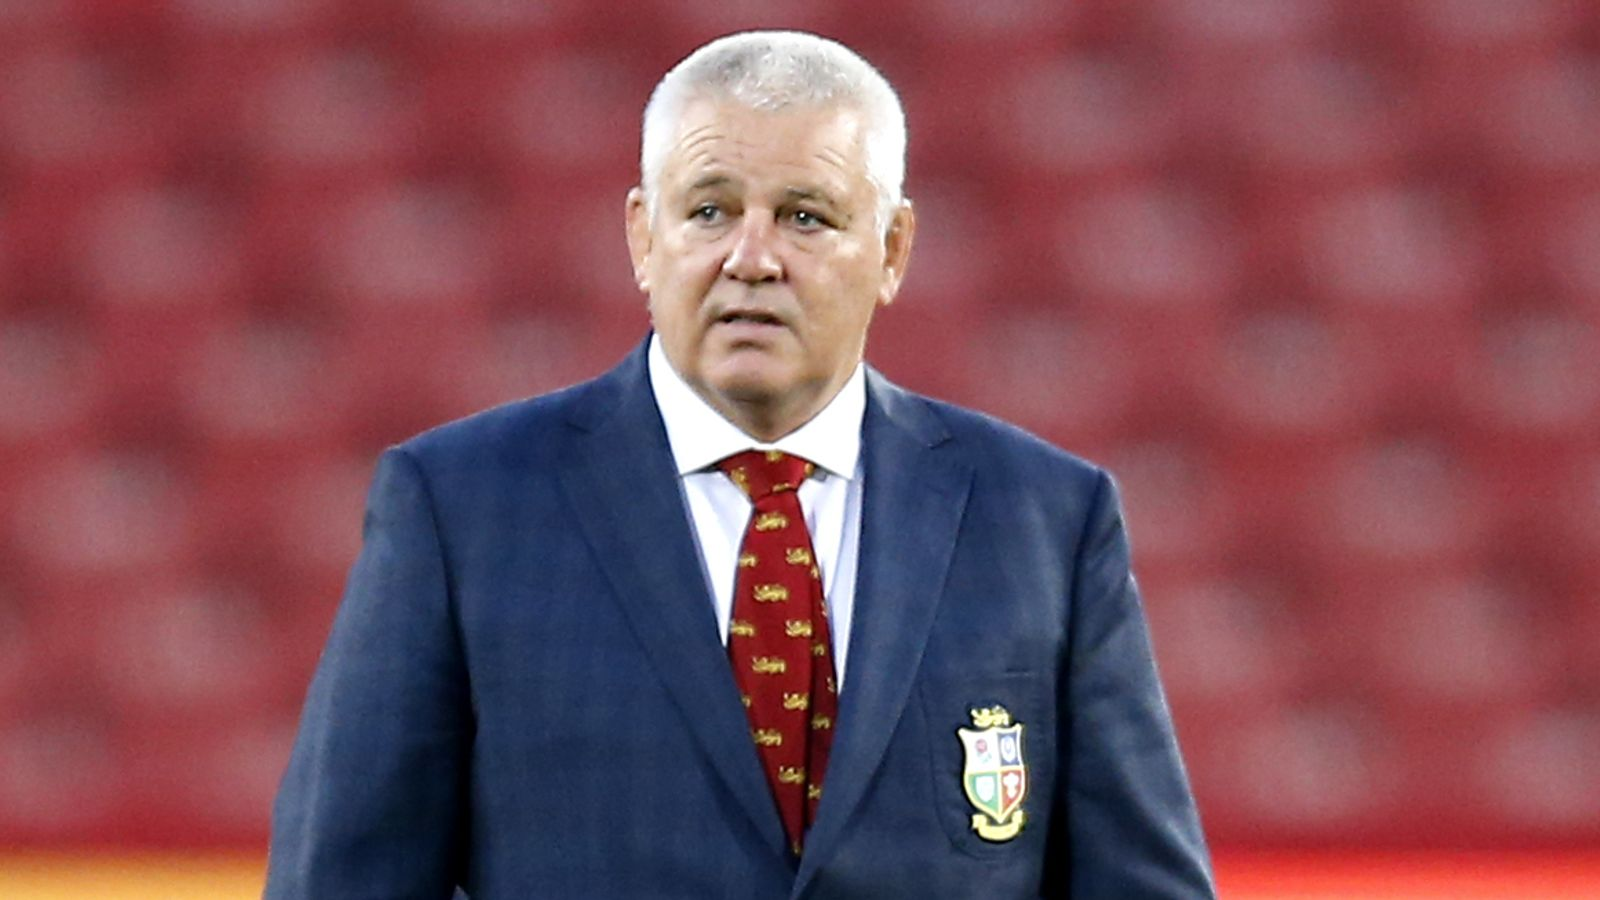 British and Irish Lions tour facing more upheaval with further fixture changes likely